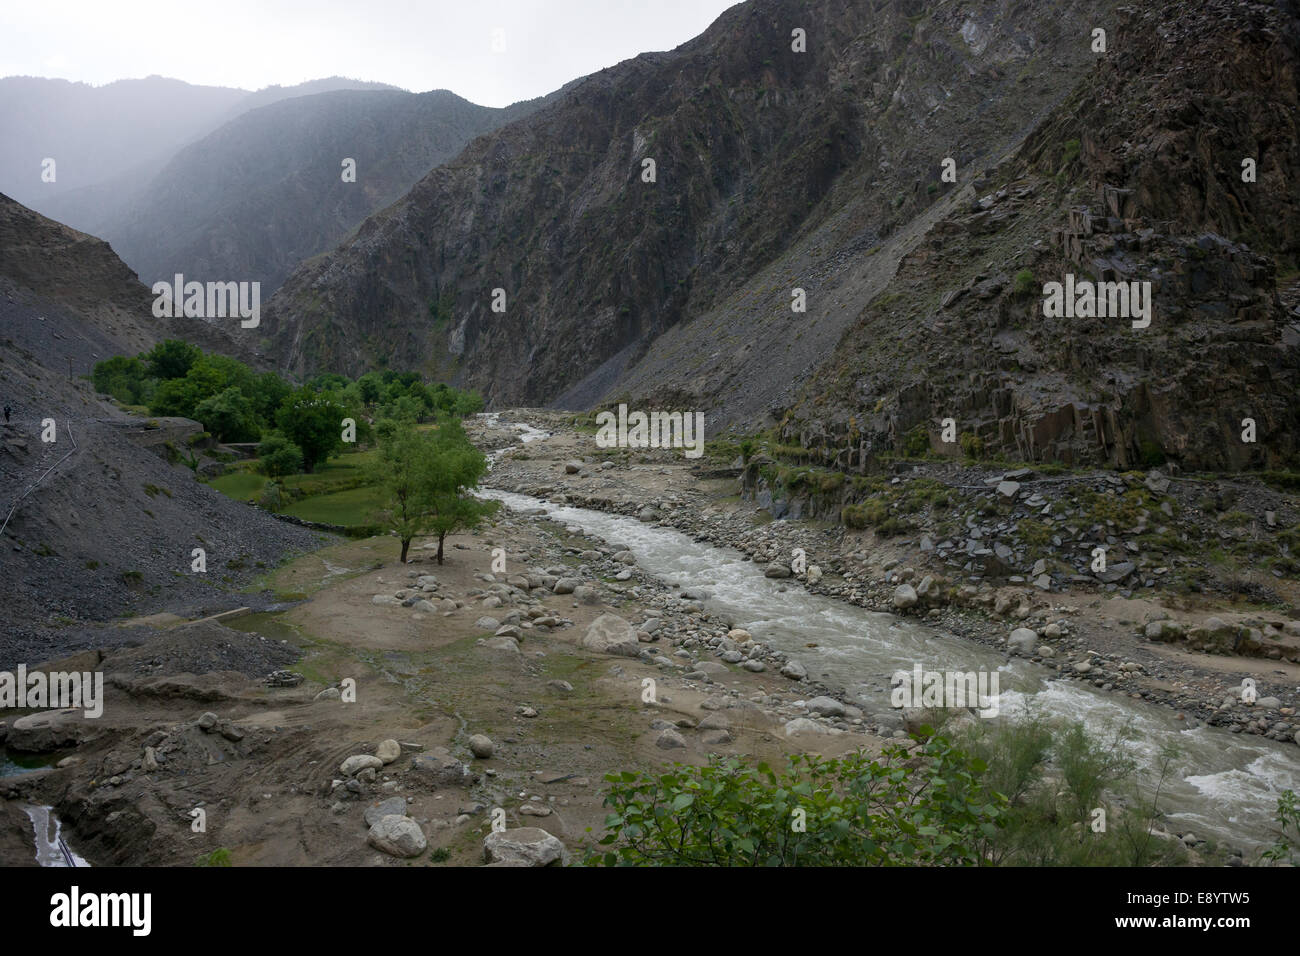 Rugged scenery of the Rumbur Valley, Chitral, Khyber-Pakhtunkhwa, Pakistan - Stock Image